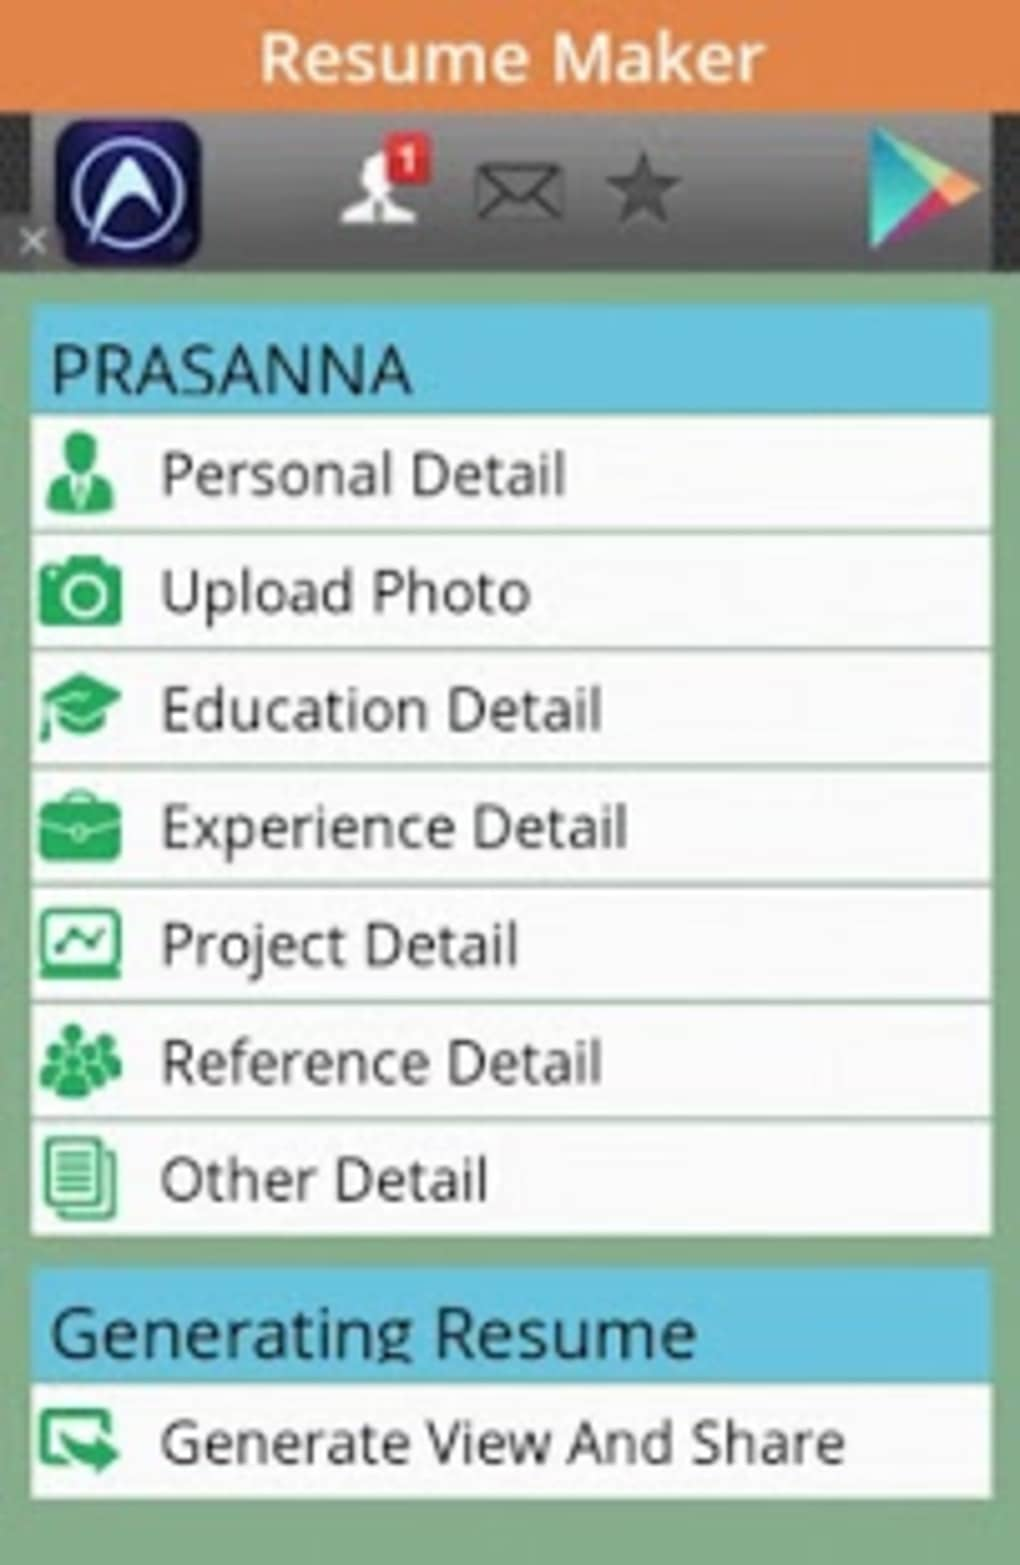 Free Resume Maker App For Android Download